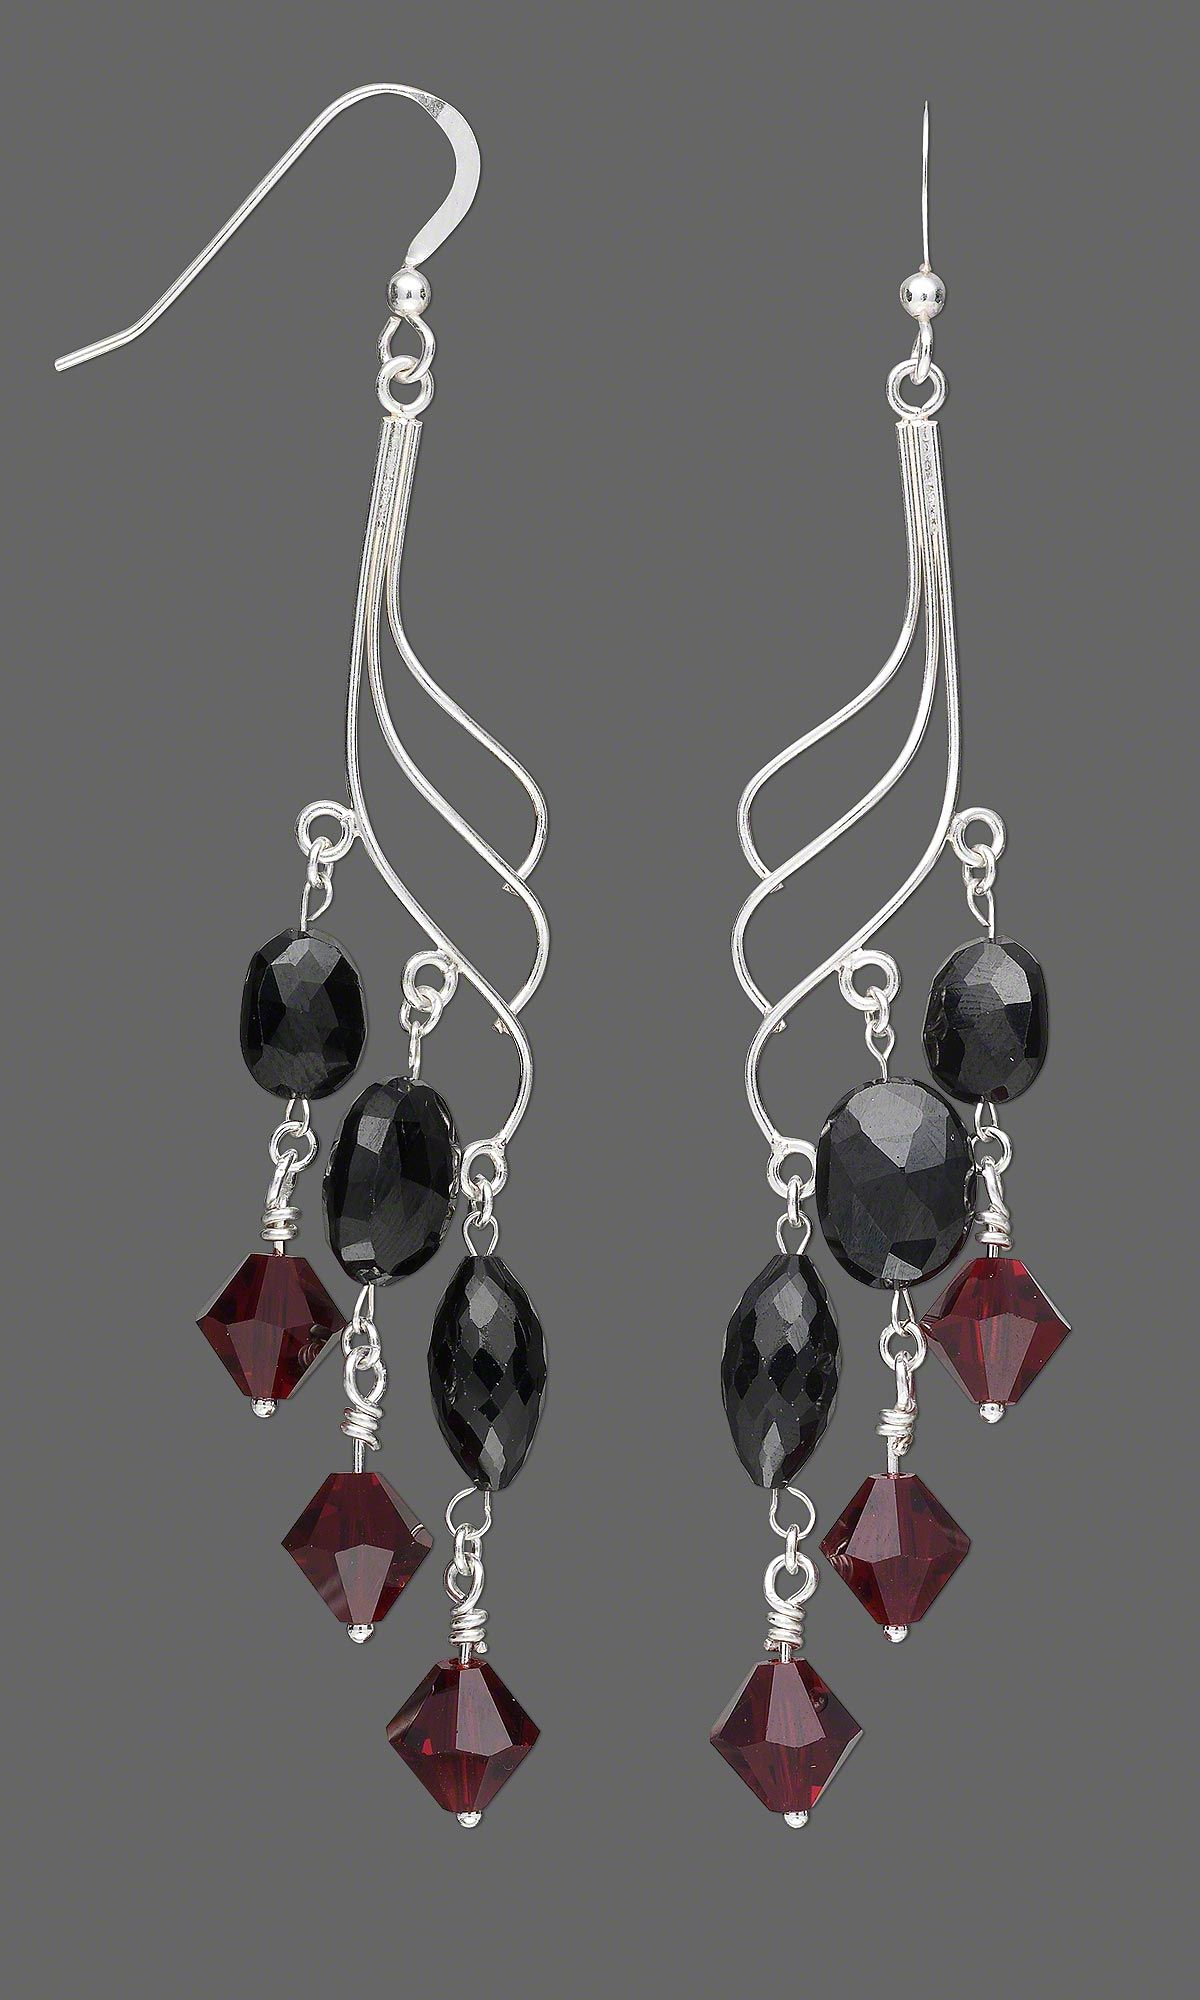 Jewelry Design - Earring Set with Black Spinel Beads and Swarovski ...